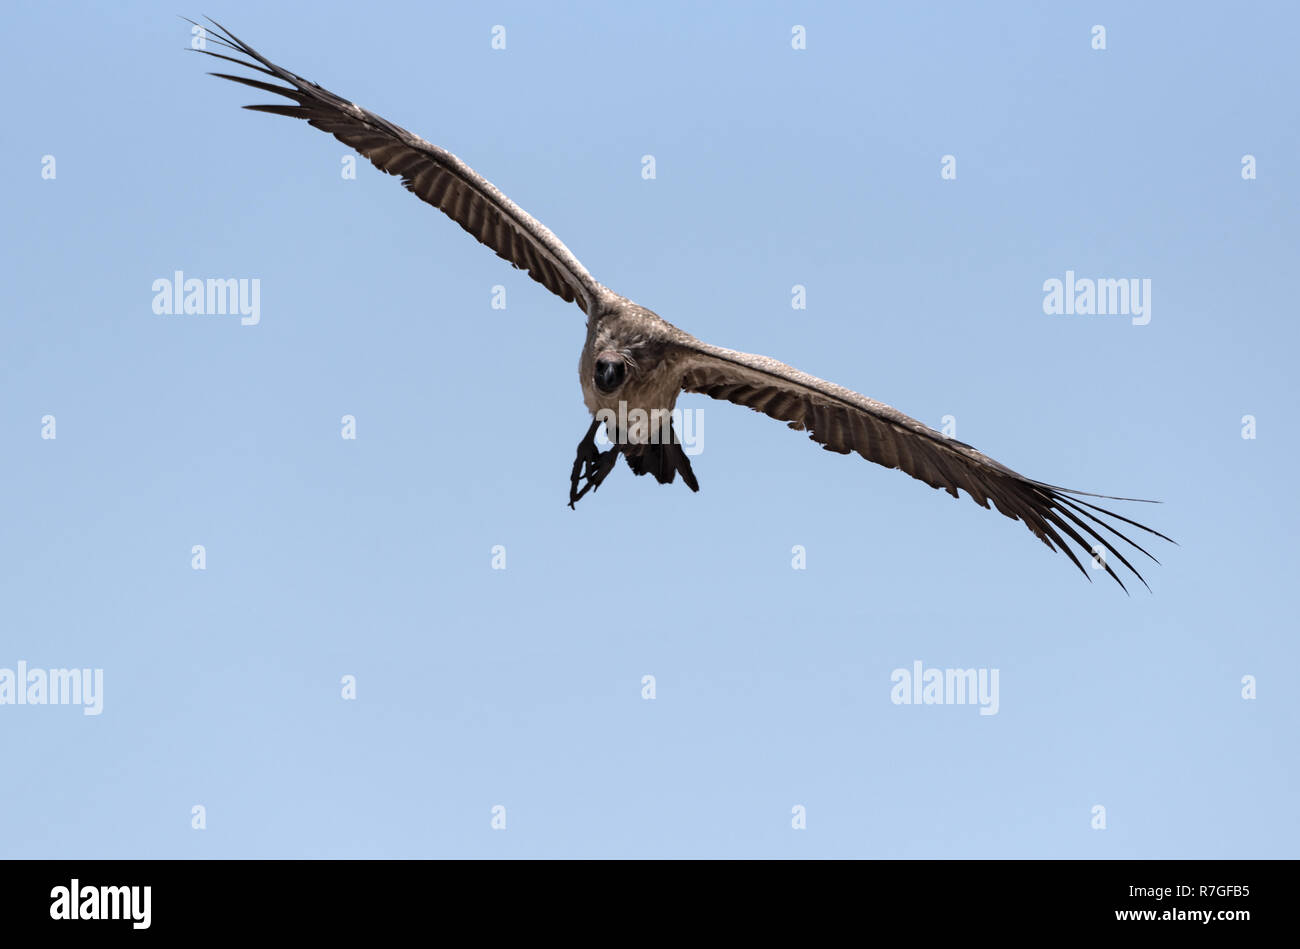 a white-backed vulture in flight, botswana, africa - Stock Image